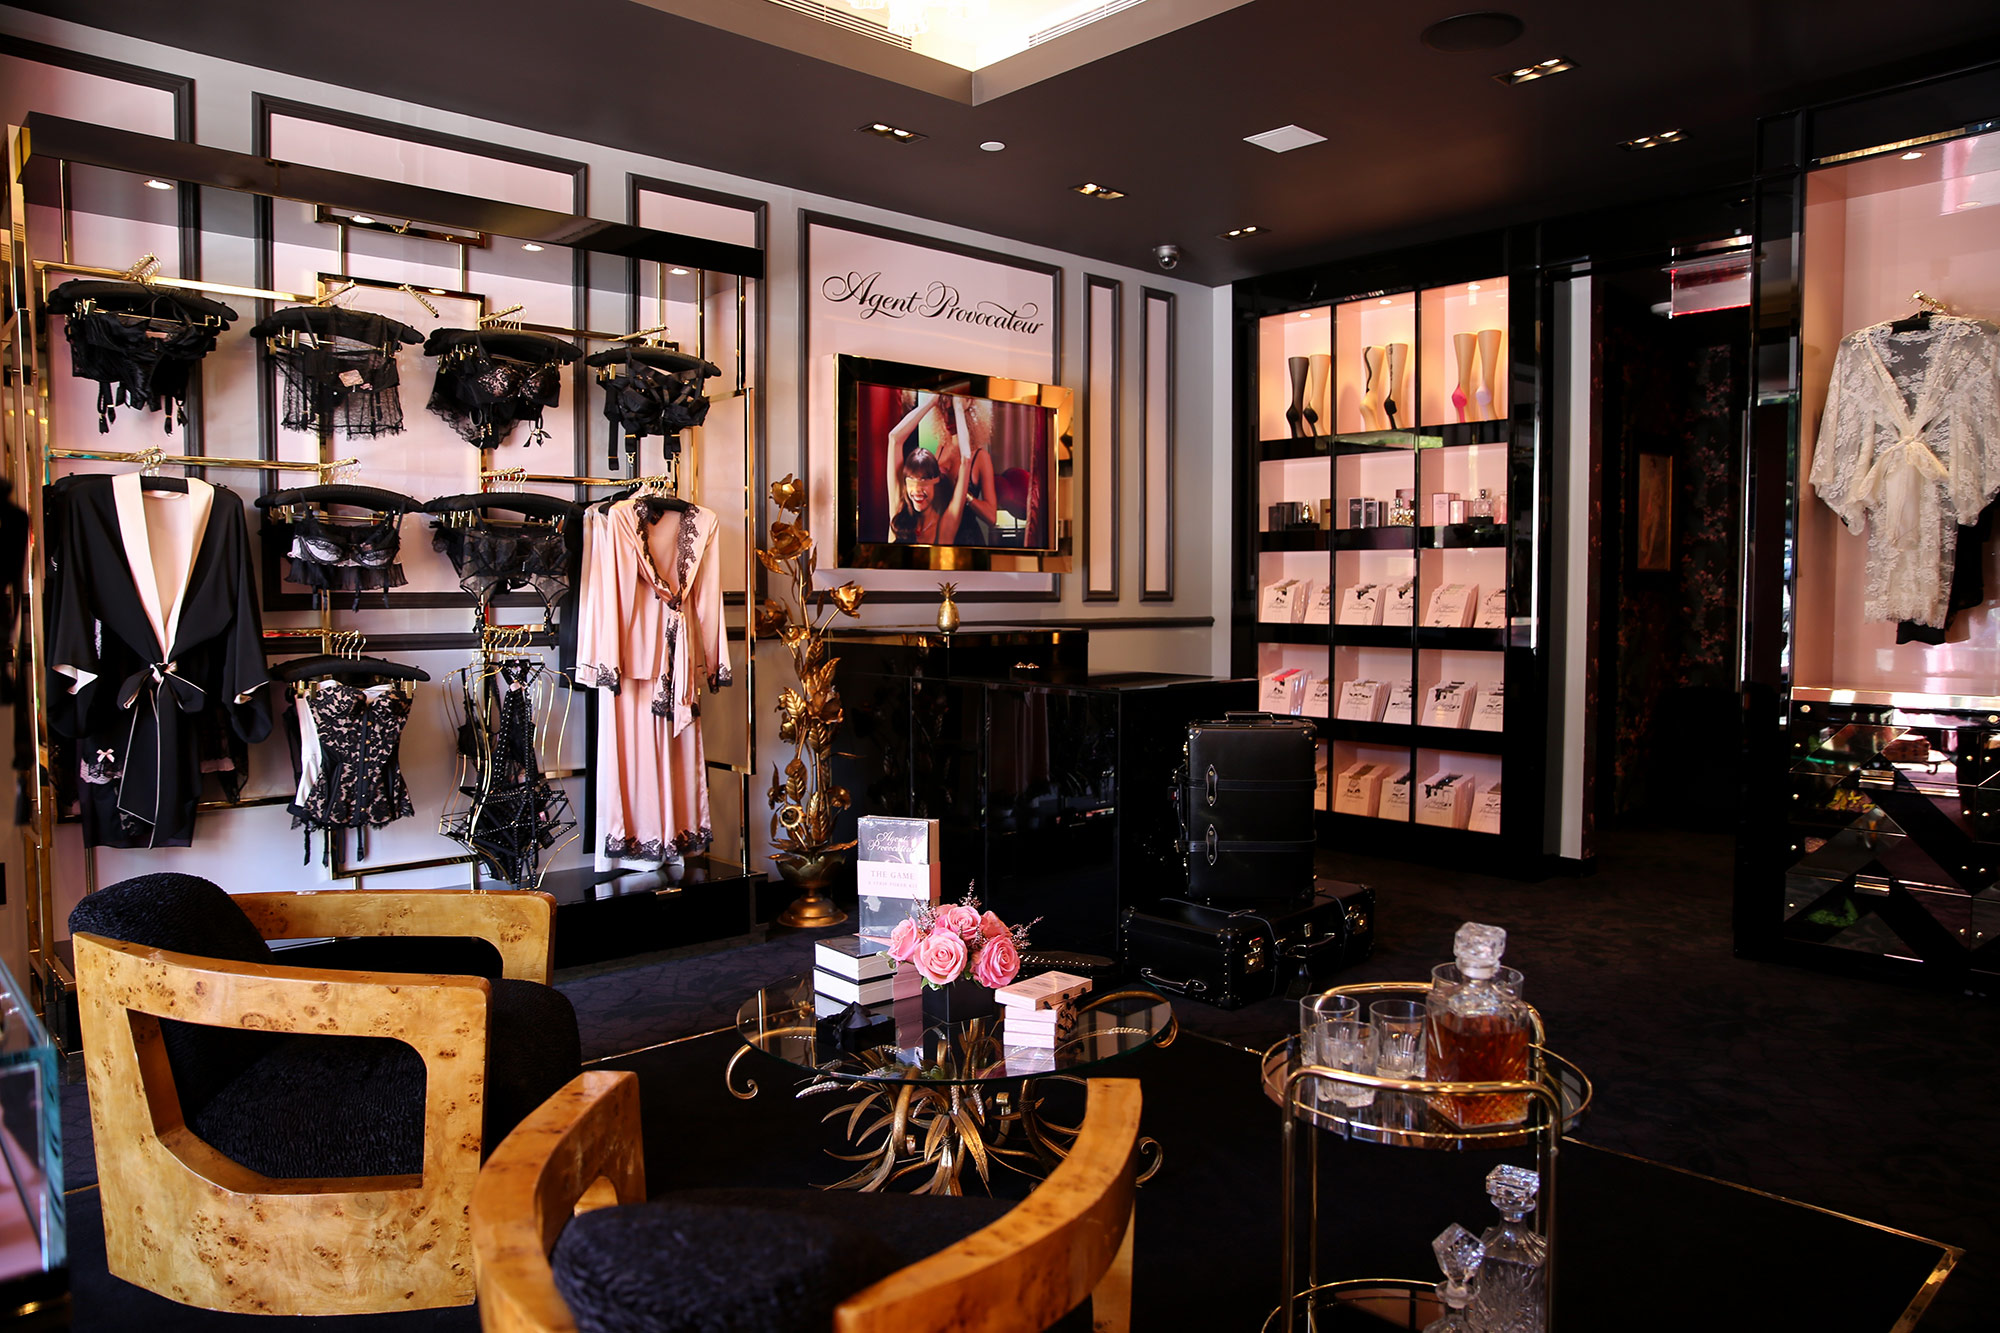 agent-provocator-boutique-paris-latest-stores-shopping-ideas